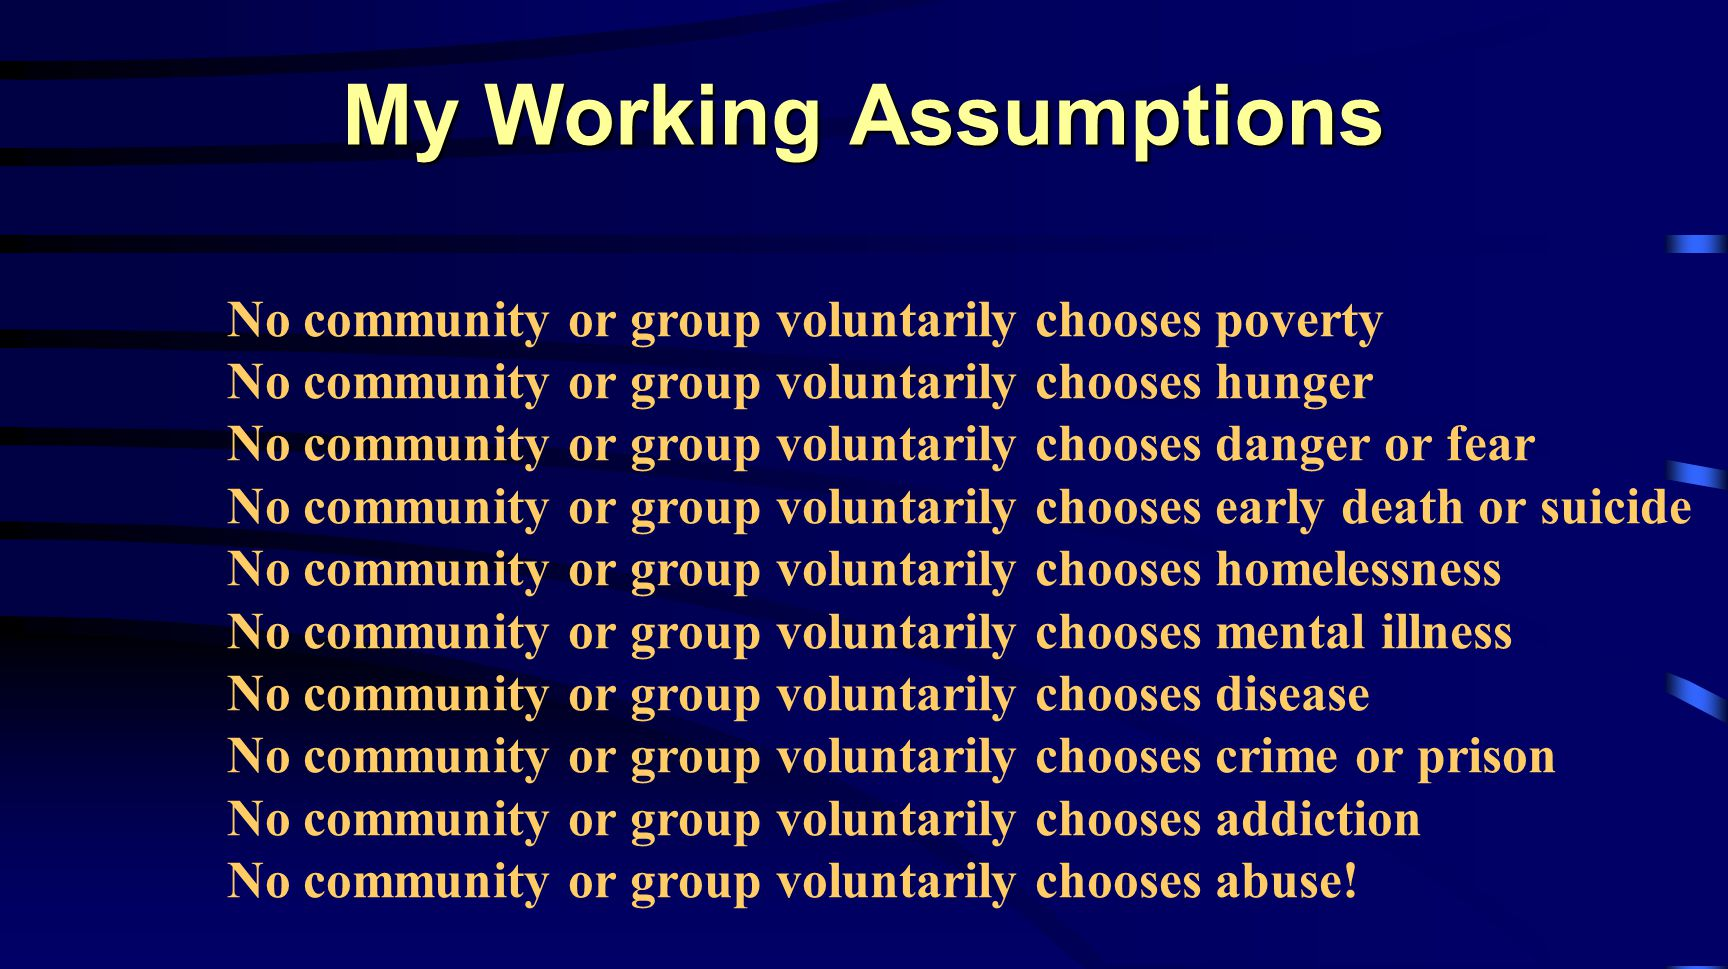 No community or group voluntarily chooses poverty No community or group voluntarily chooses hunger No community or group voluntarily chooses danger or fear No community or group voluntarily chooses early death or suicide No community or group voluntarily chooses homelessness No community or group voluntarily chooses mental illness No community or group voluntarily chooses disease No community or group voluntarily chooses crime or prison No community or group voluntarily chooses addiction No community or group voluntarily chooses abuse.